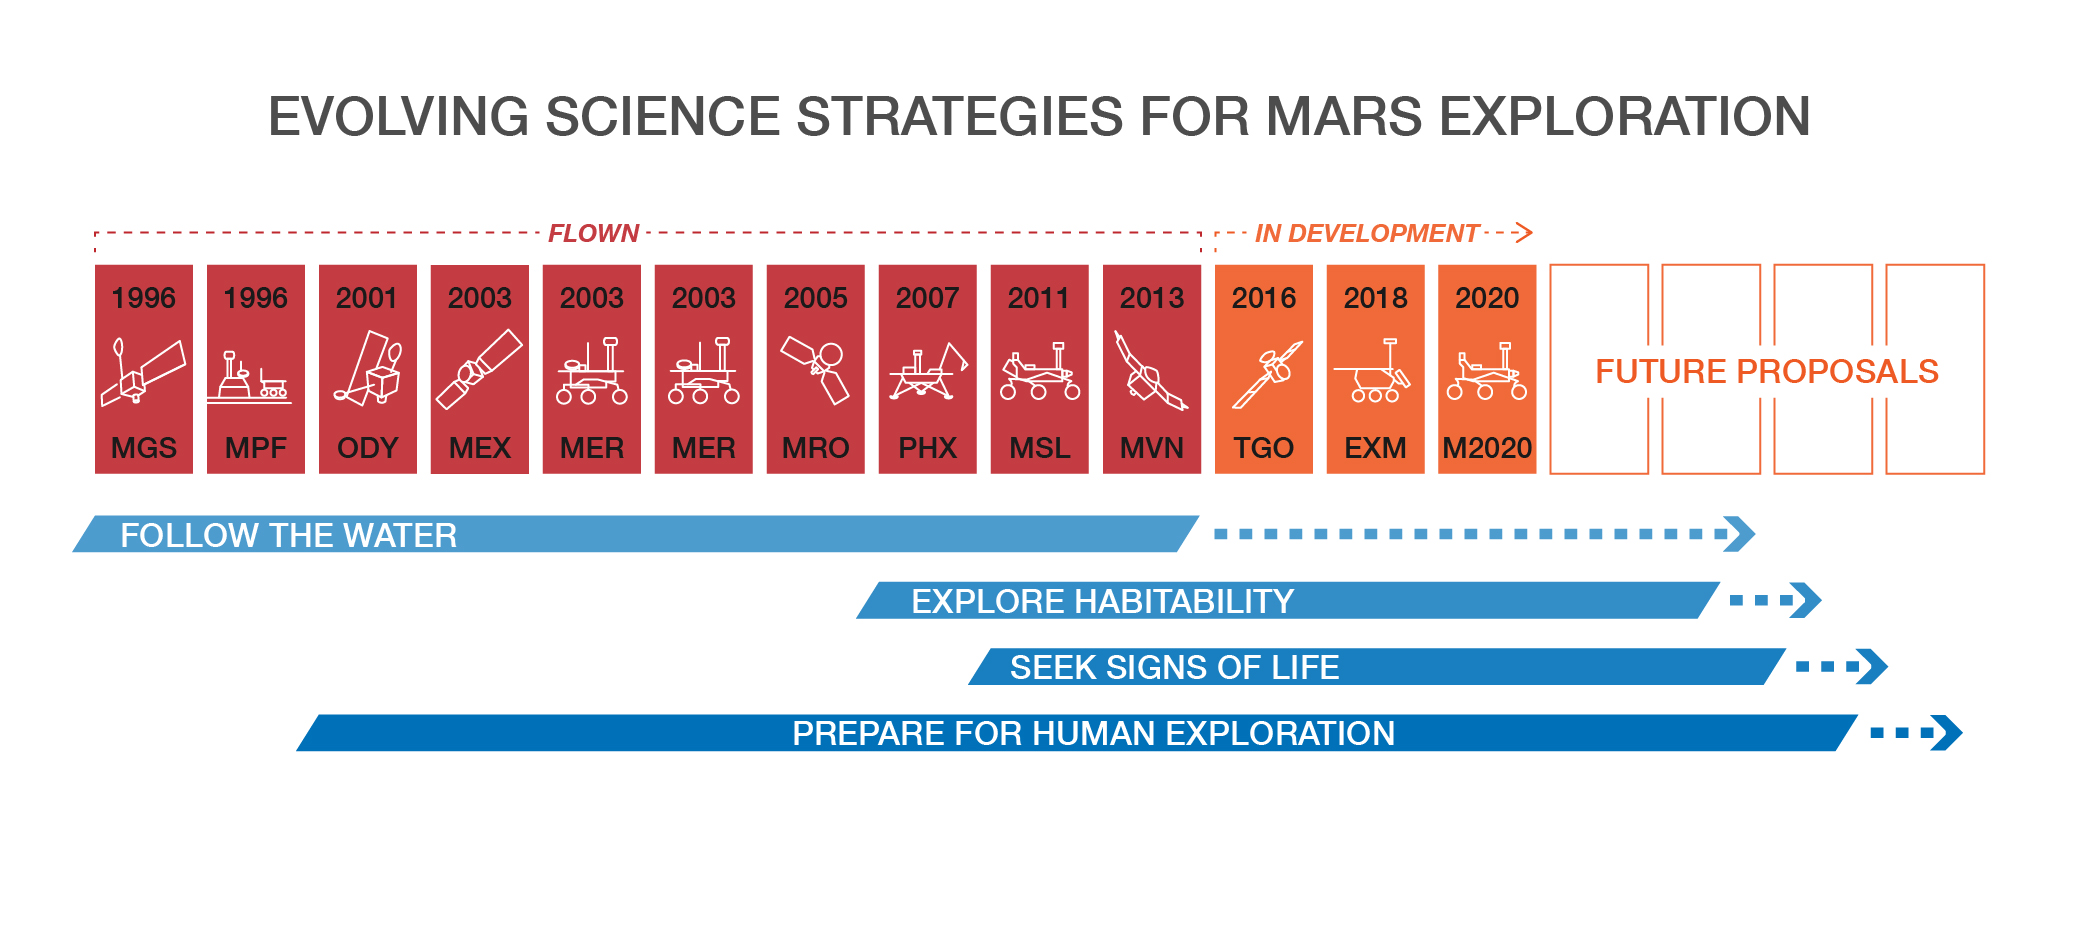 nasas mars rover mission and science ideas - photo #35